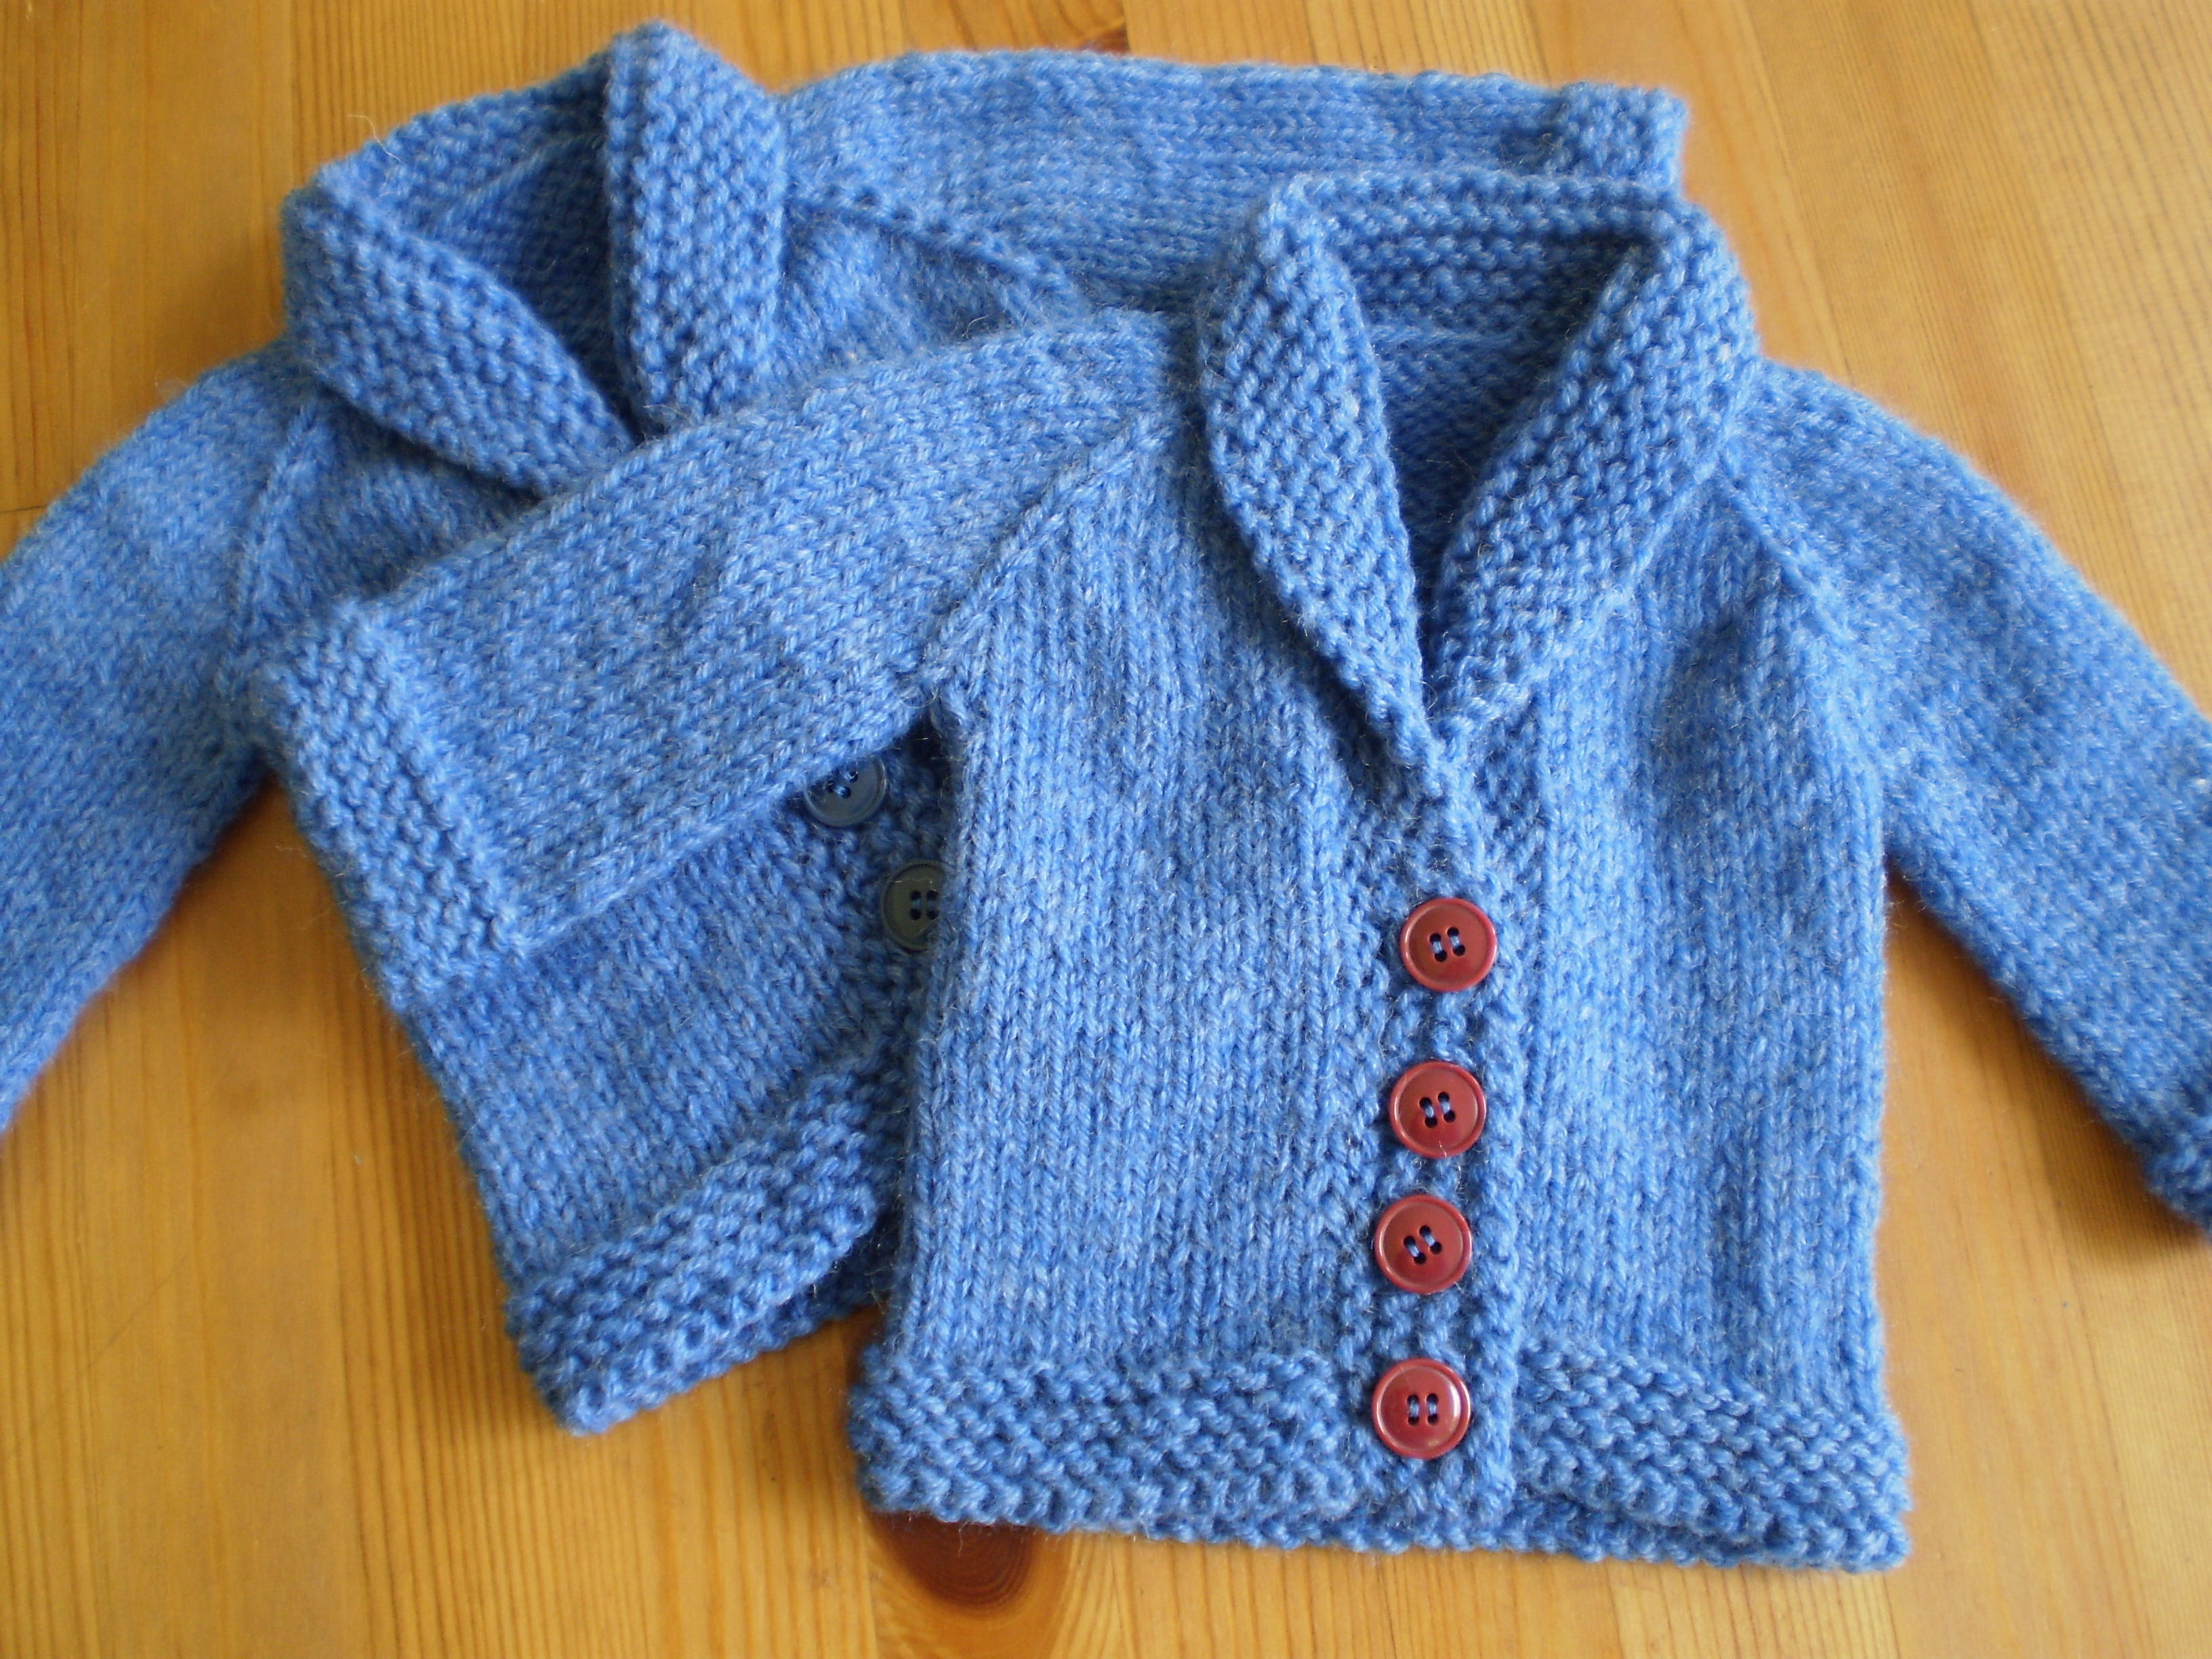 Free Knitting Pattern Baby Aran Cardigan : April 2014 On the Needles